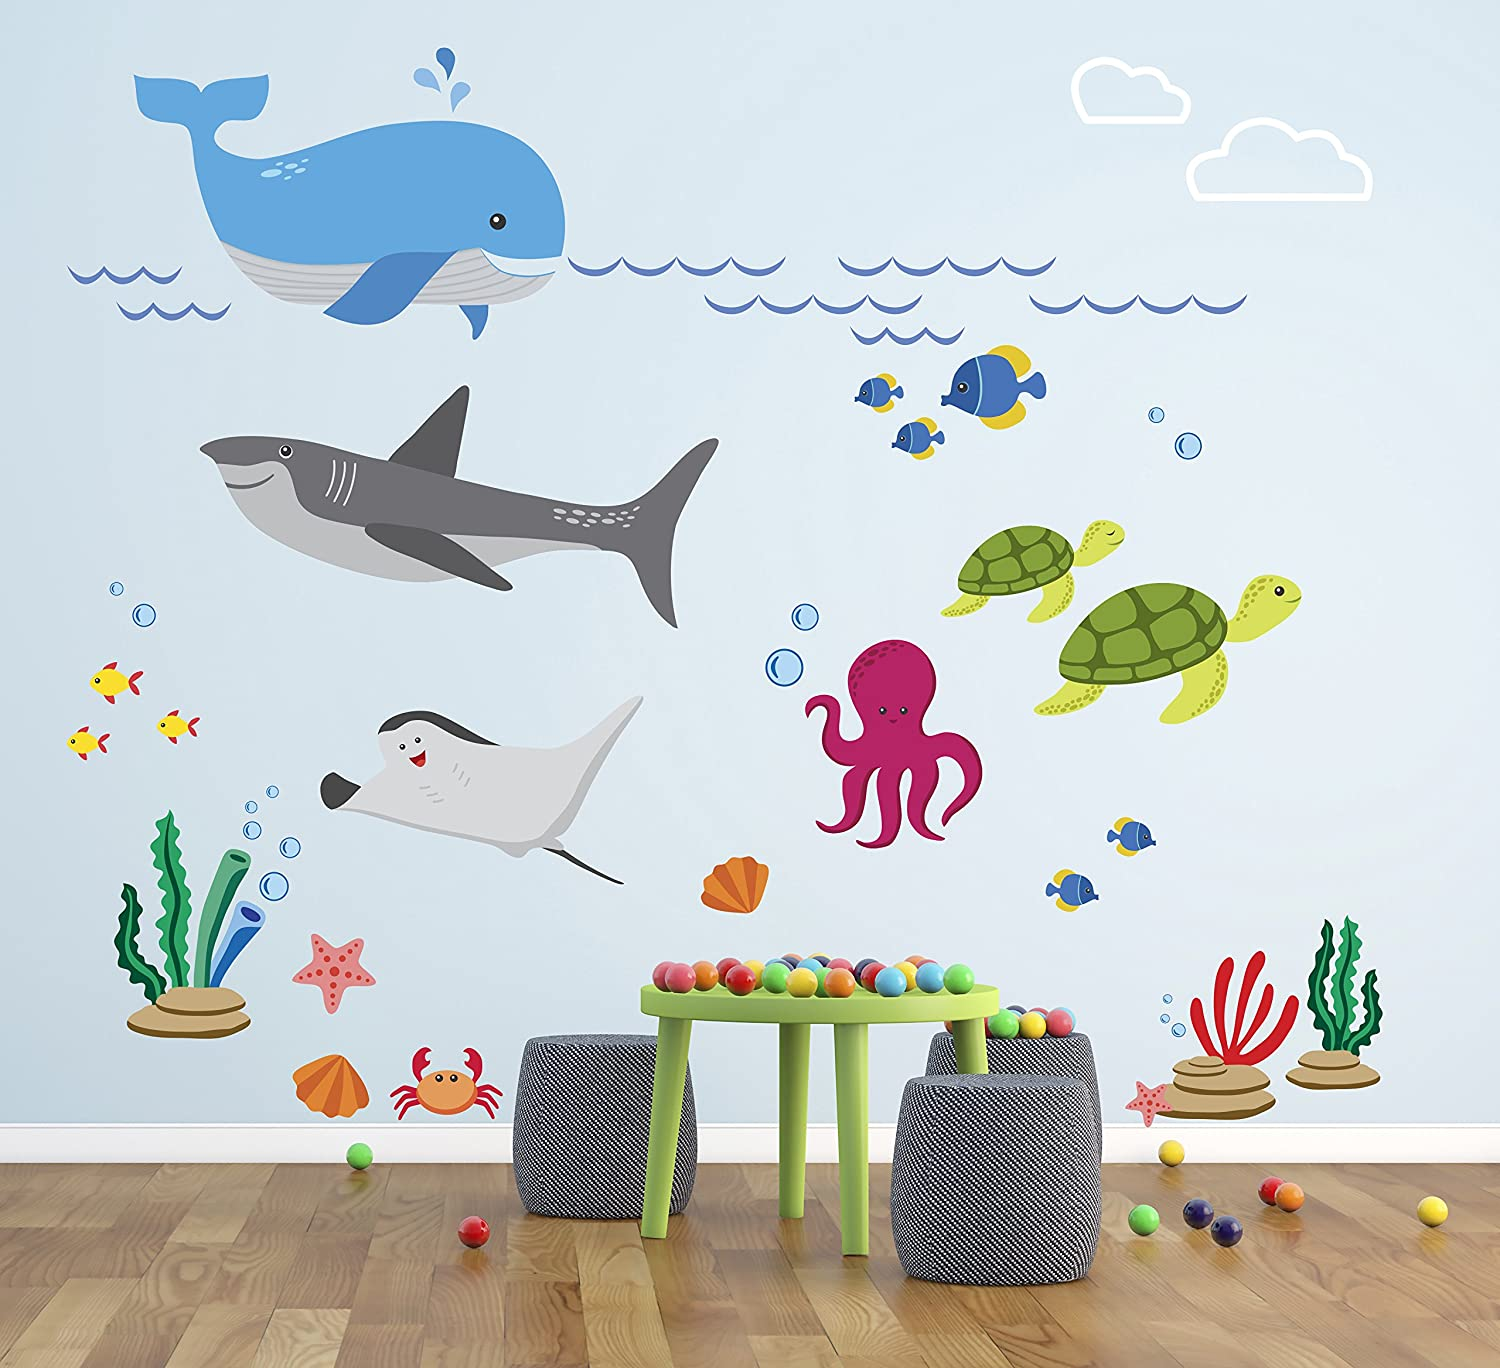 Amazon.com : Aquarium Theme Wall Decal - Under The Sea Nursery Wall Decals - Baby Room Wall Decor - Pinkie Penguin (60W X 48H) : Baby